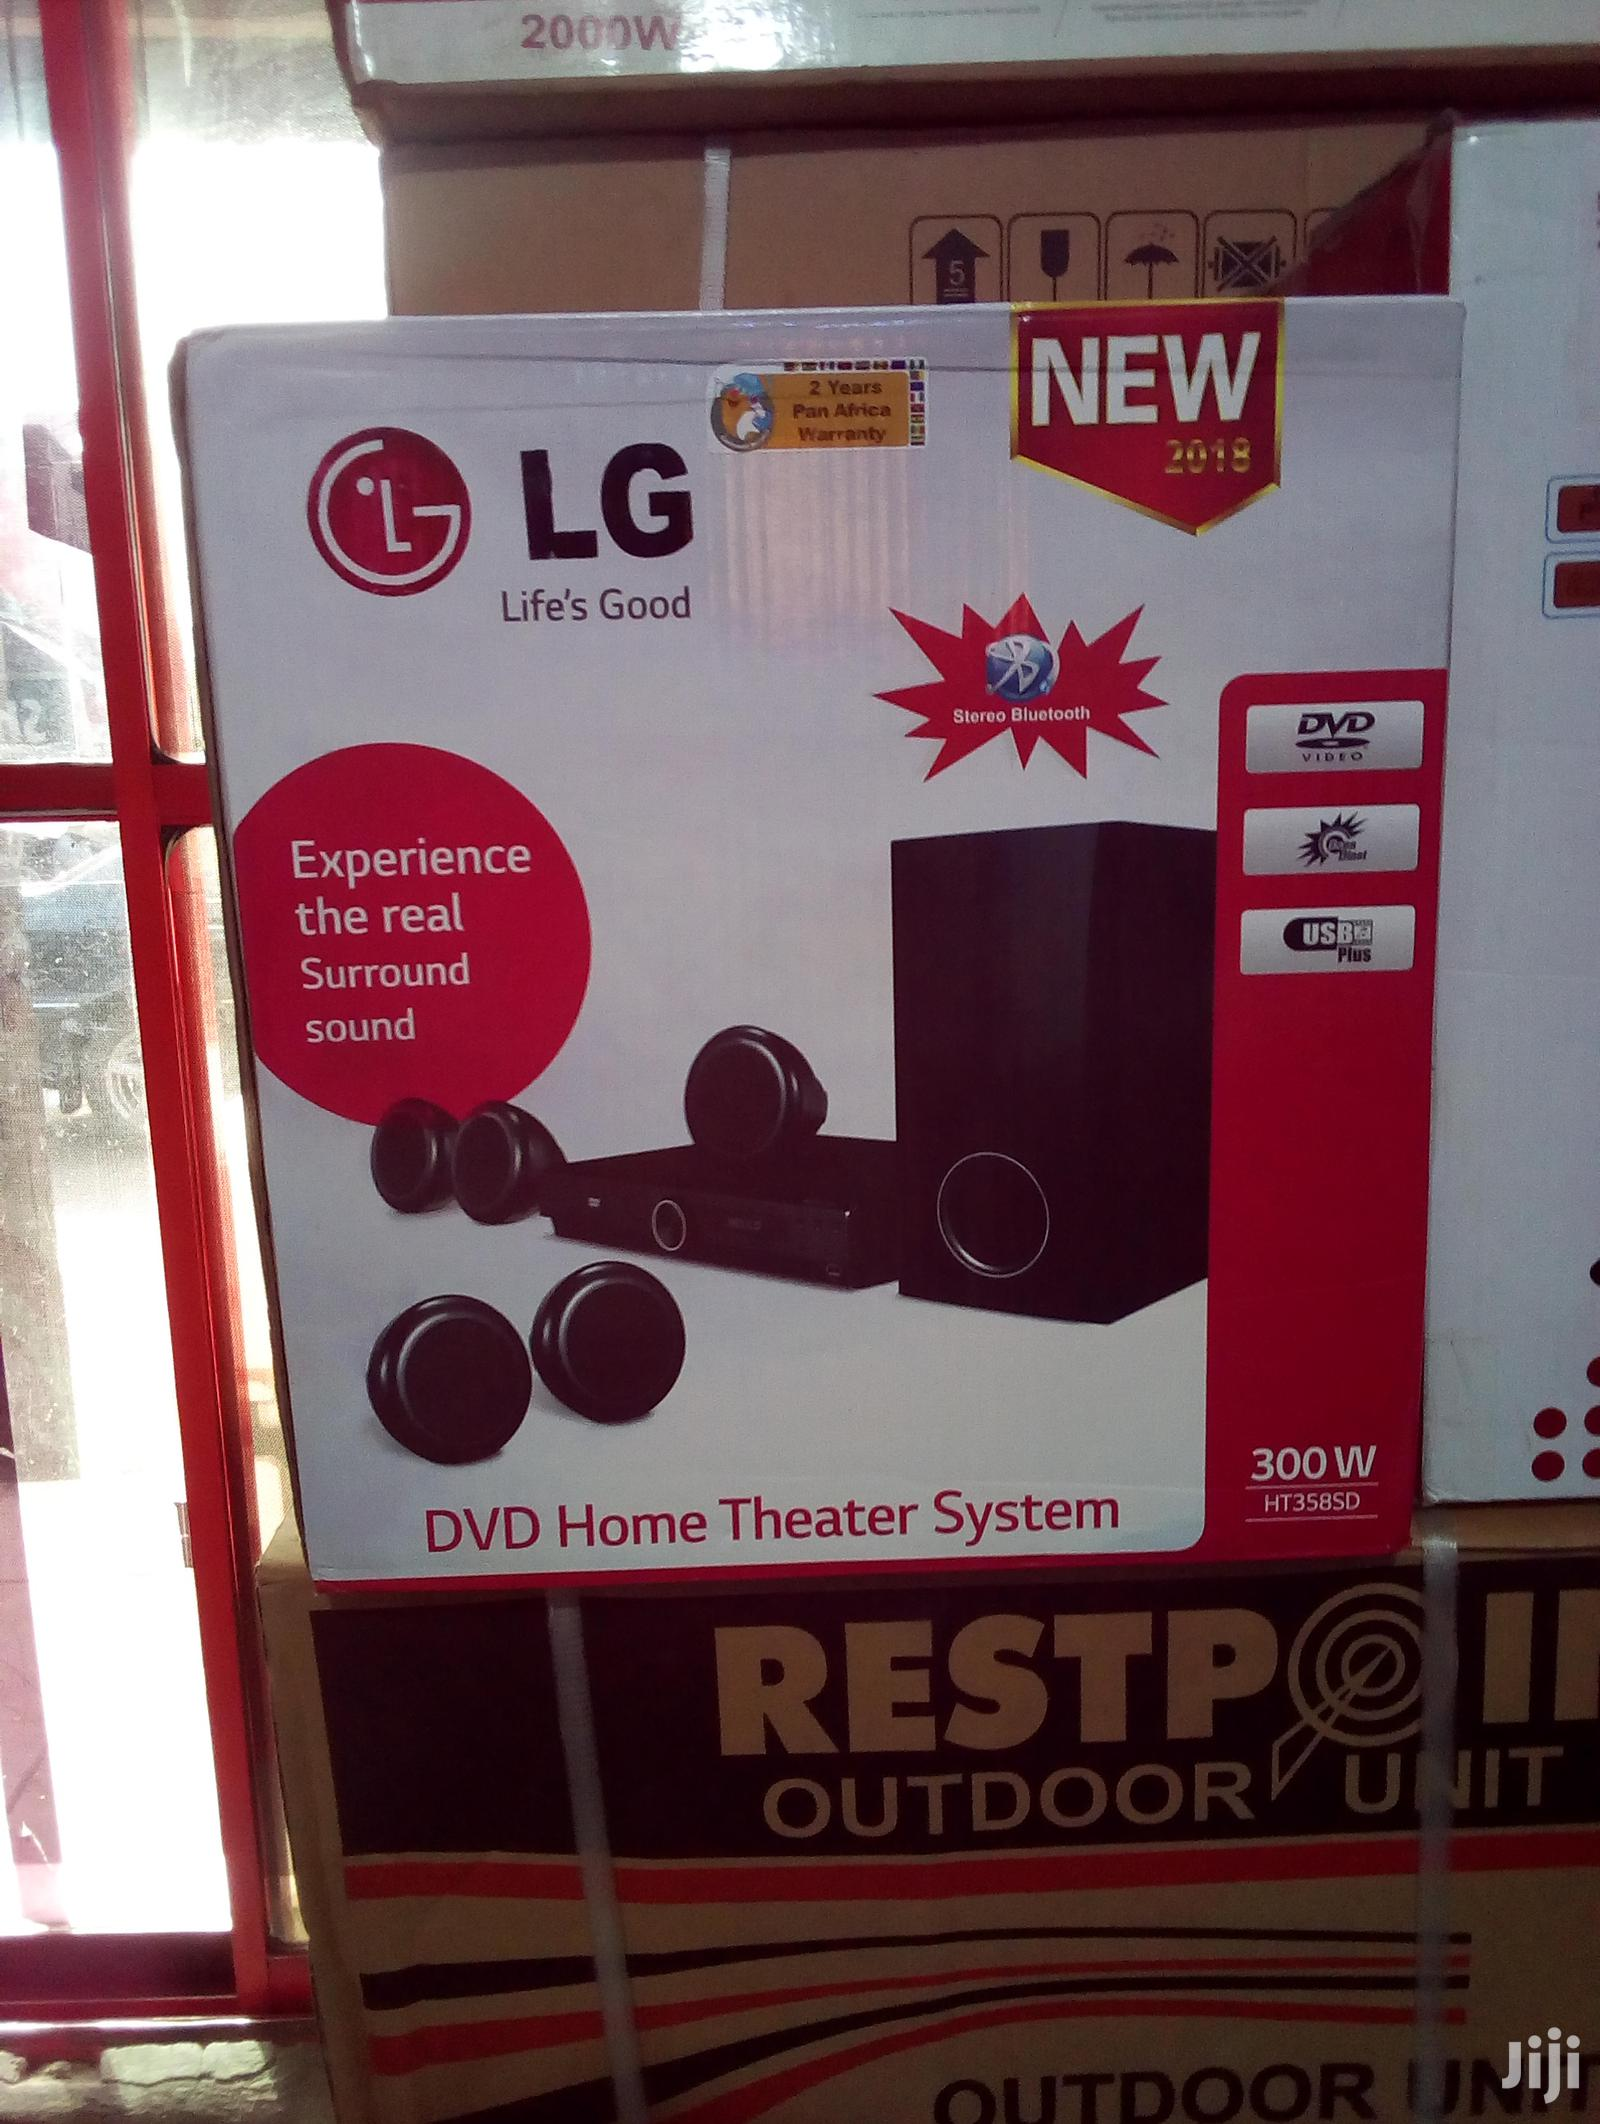 DVD Home Theater System 300W